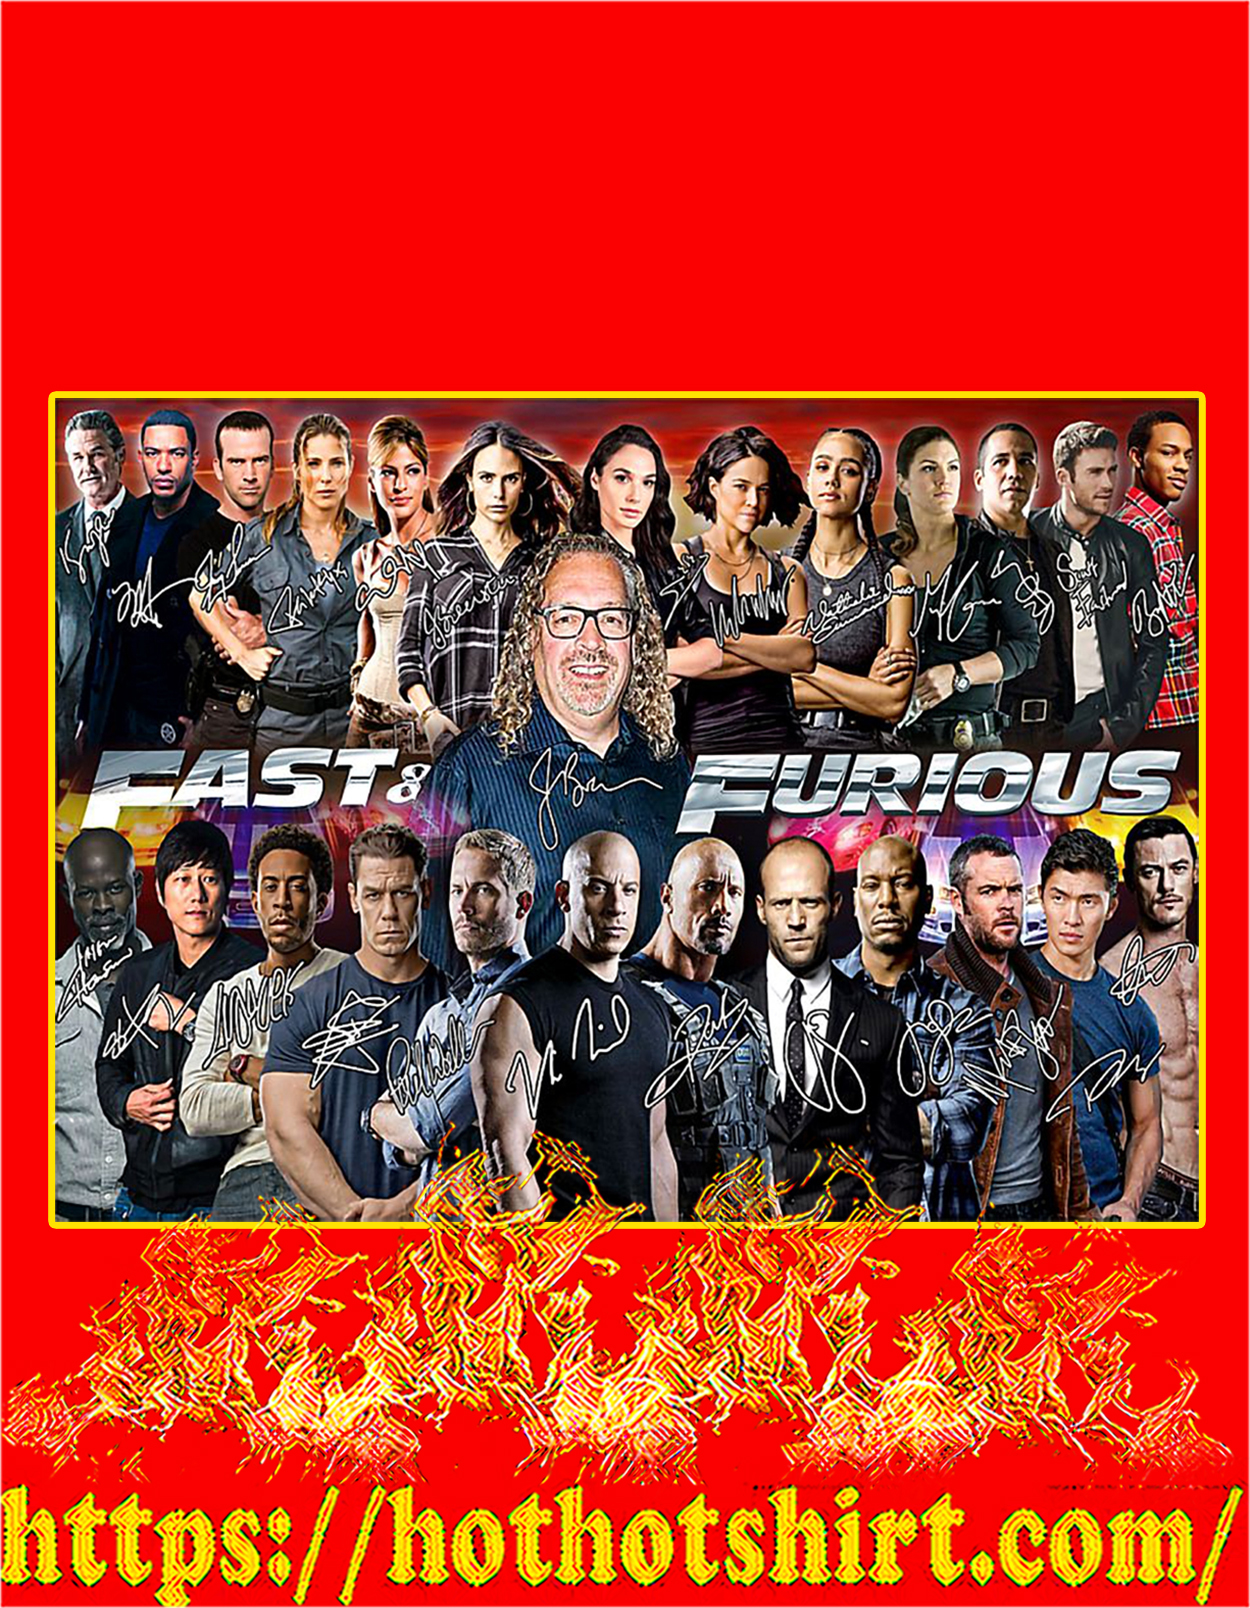 Fast and furious actor signature poster - A3